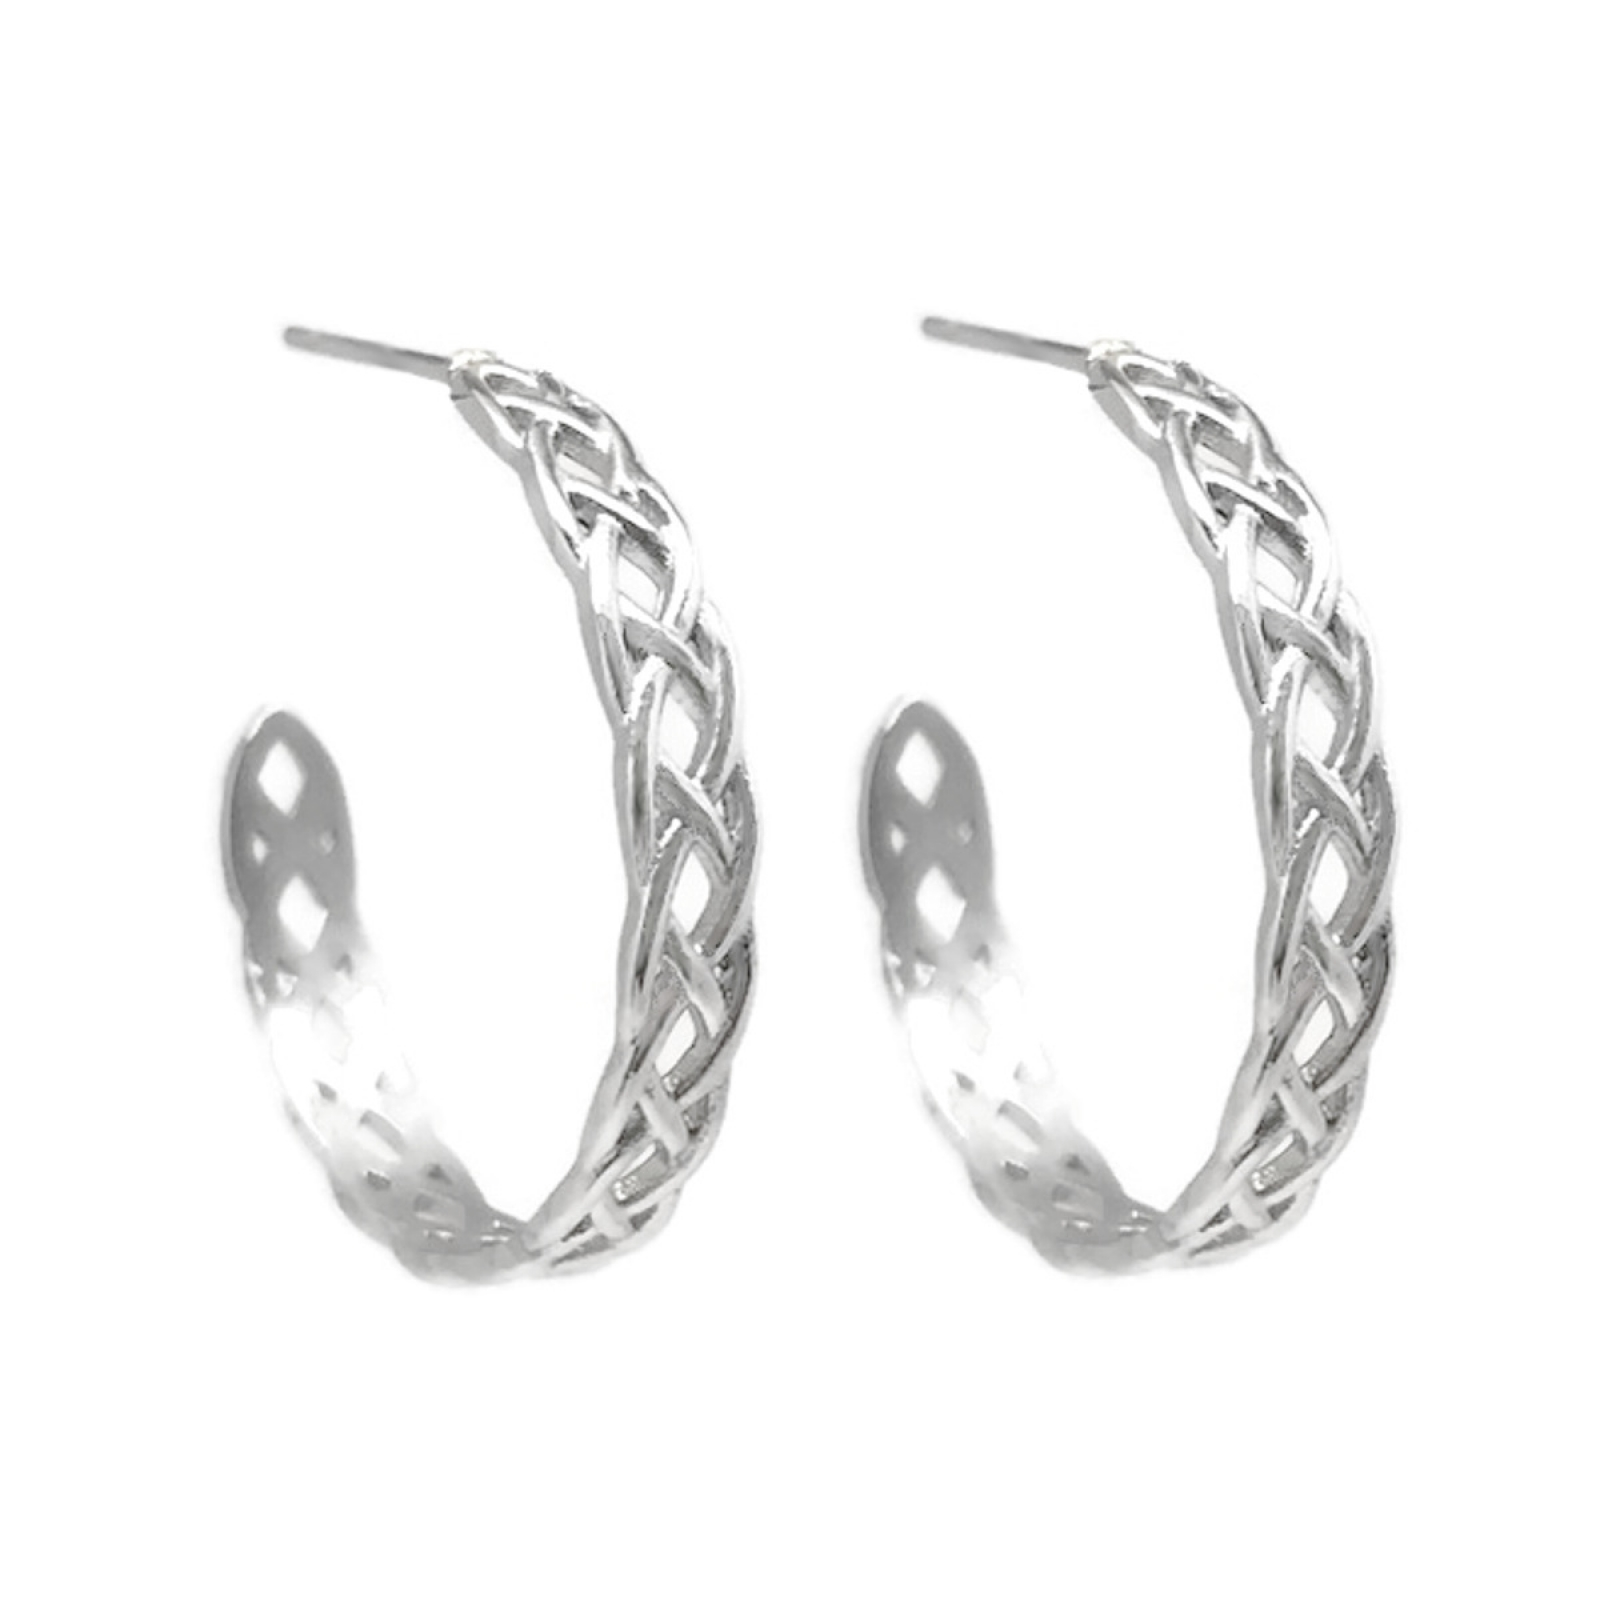 Endless Love Knot New Style Medium Round Traditional Hoop Earrings 0bcd600a7c